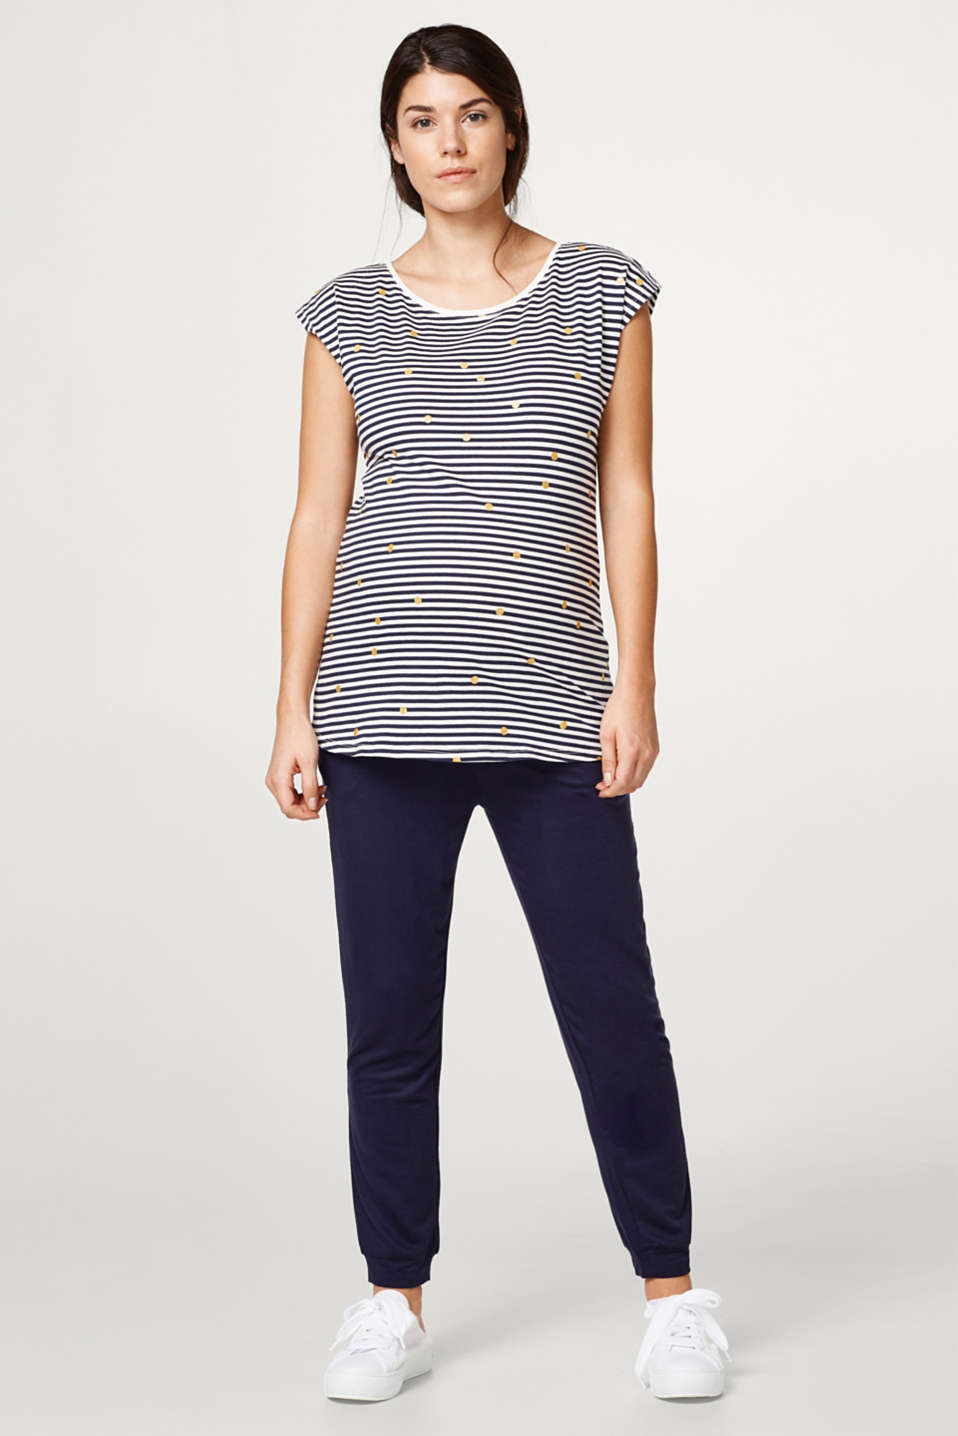 Esprit - Top with glittery polka dots, 100% cotton